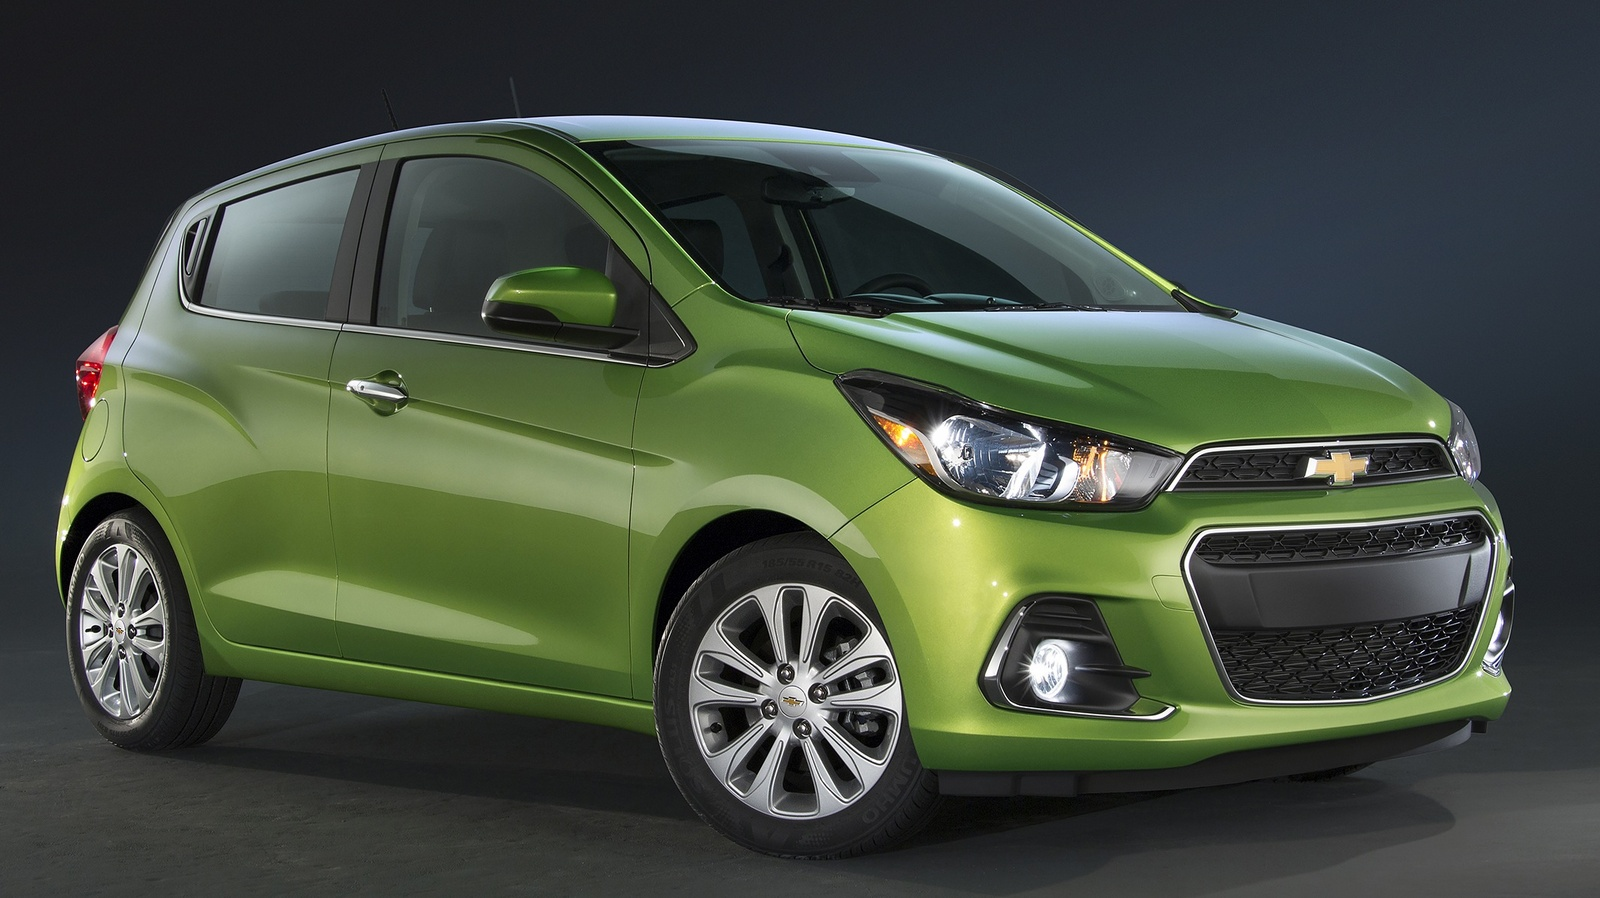 Chevy Blazer 2015 >> 2016 Chevrolet Spark - Review - CarGurus